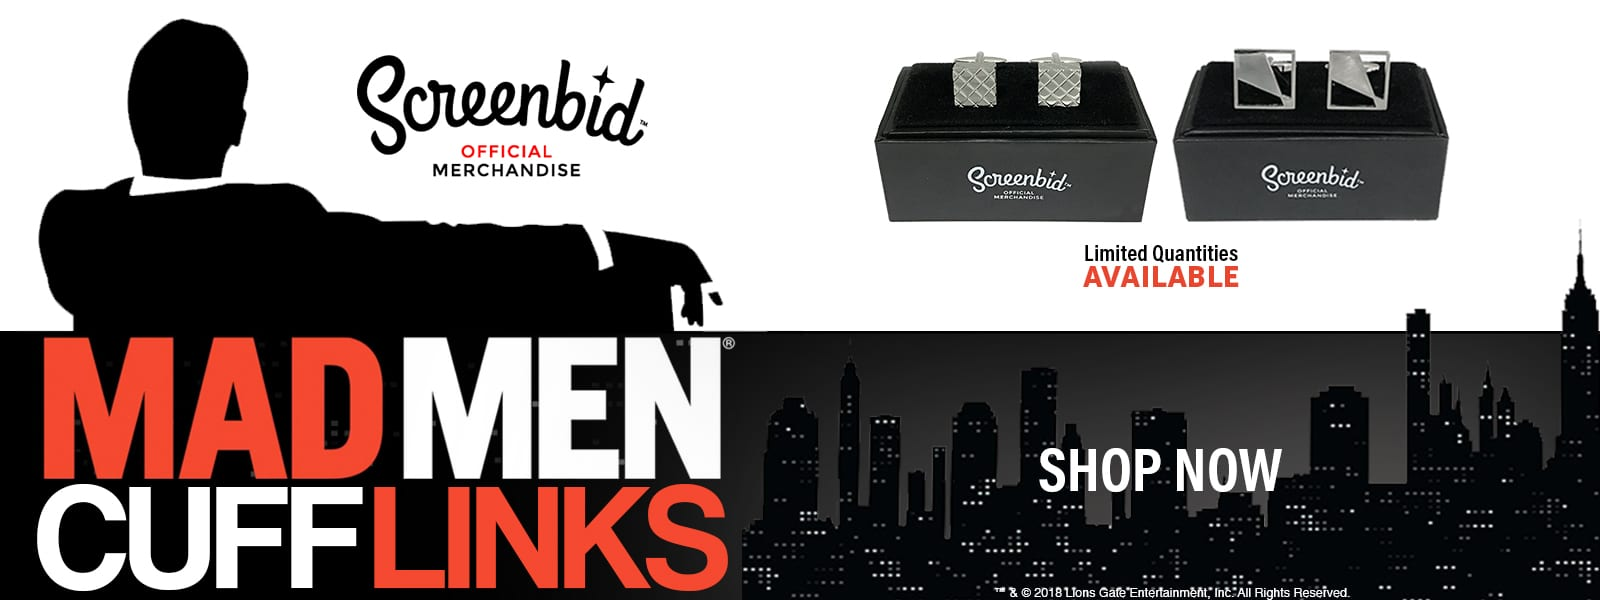 MAD MEN CUFFLINKS